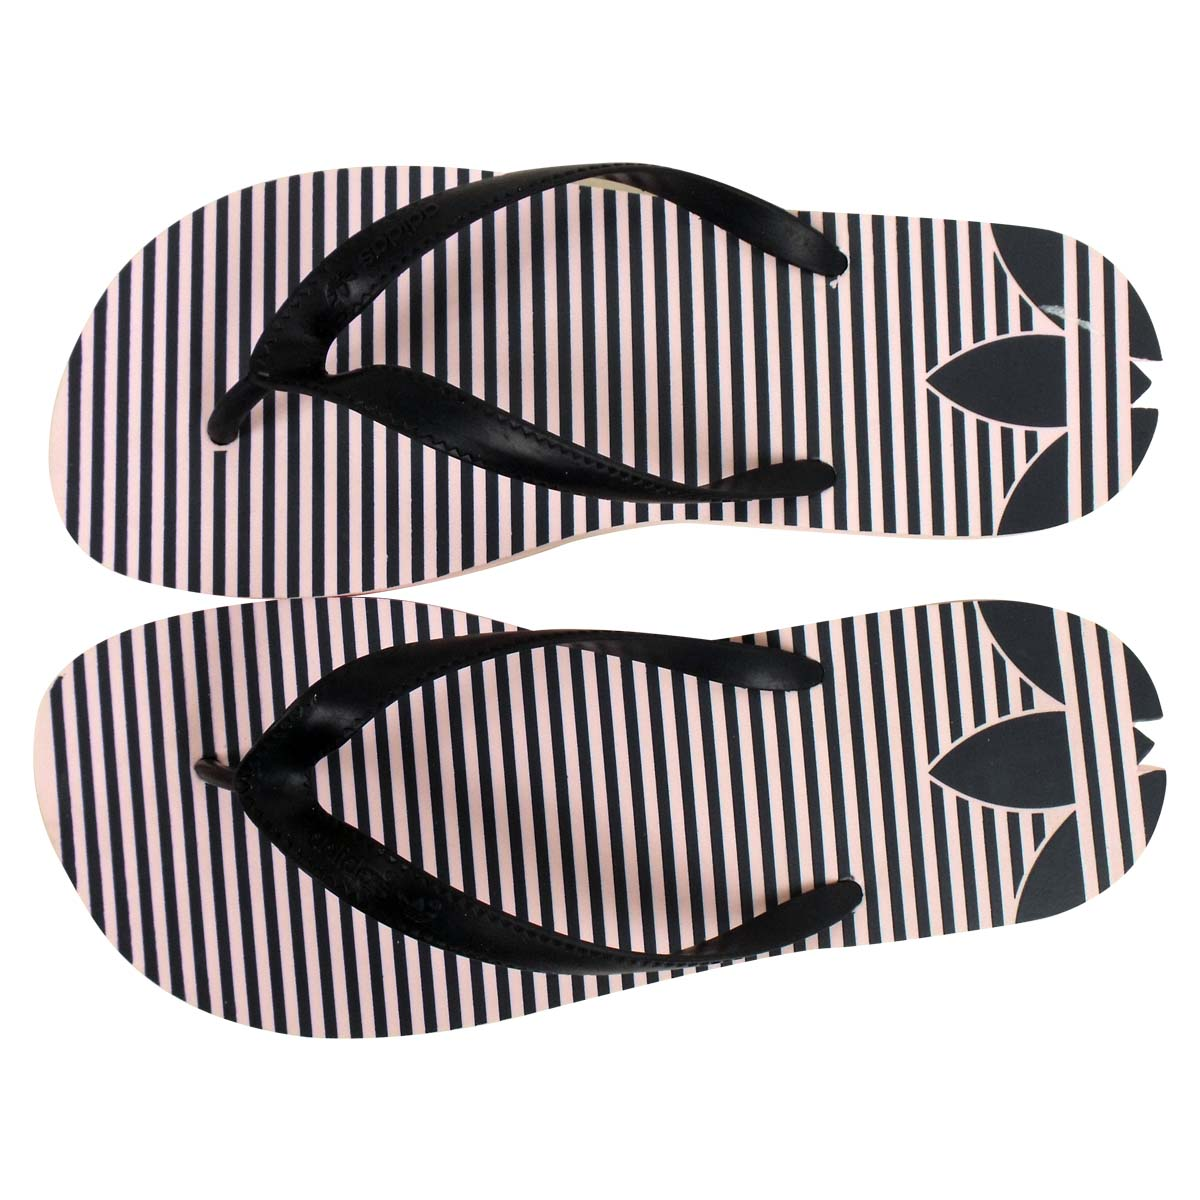 ef1adb20e Mens Adidas Adi Sun Slide Sandal Pool Beach Water Flip Flop Sandals Shower  Shoes